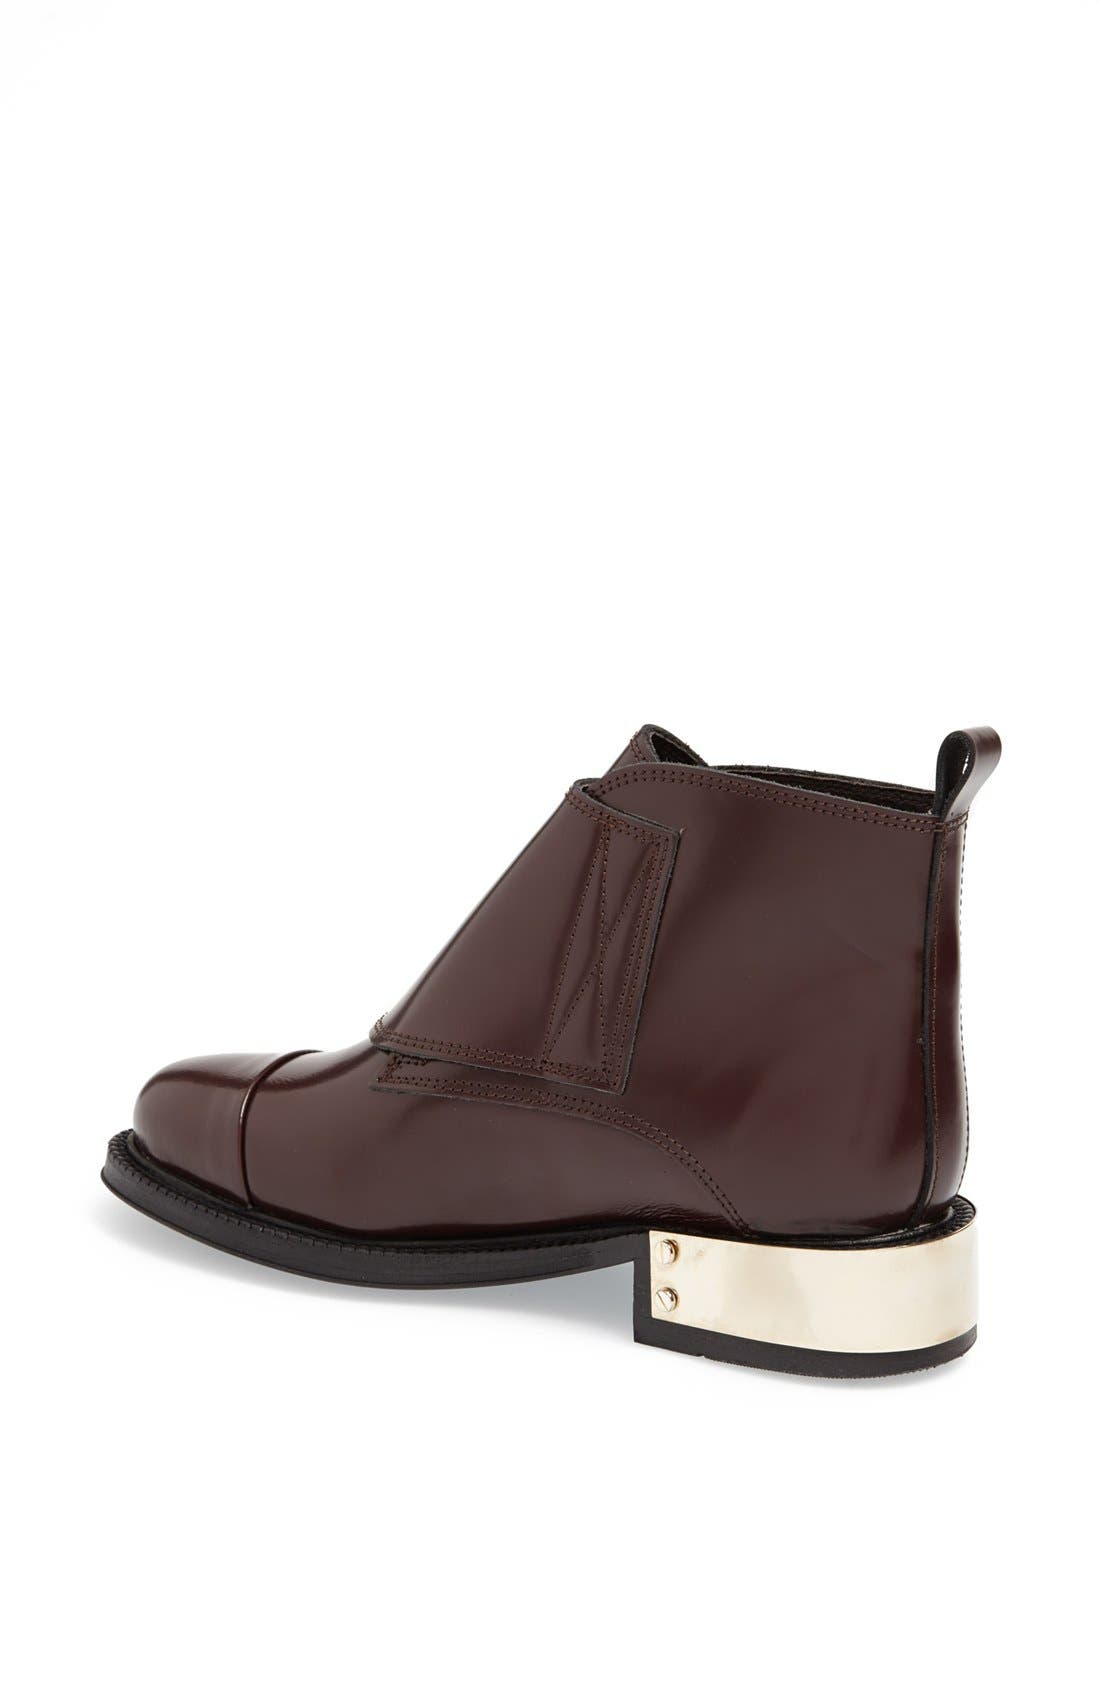 Alternate Image 2  - Topshop 'Pertora' Leather Monk Strap Boot